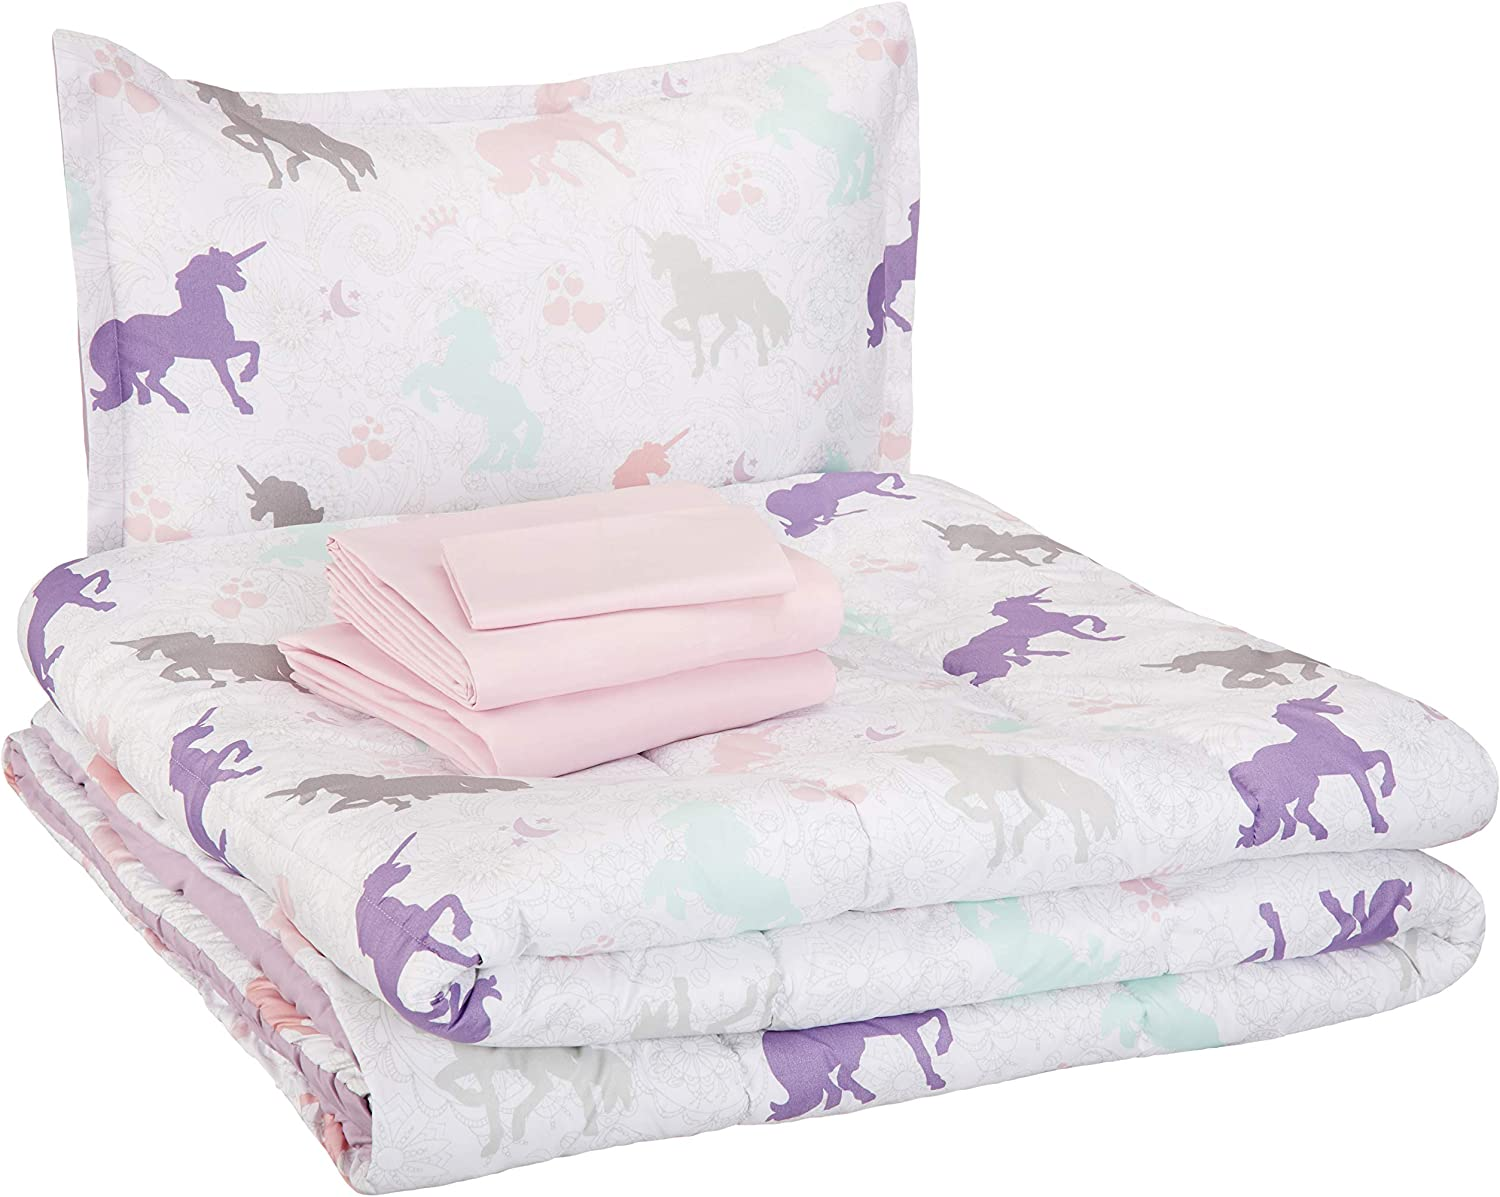 Amazon Basics Kid's Bed Set